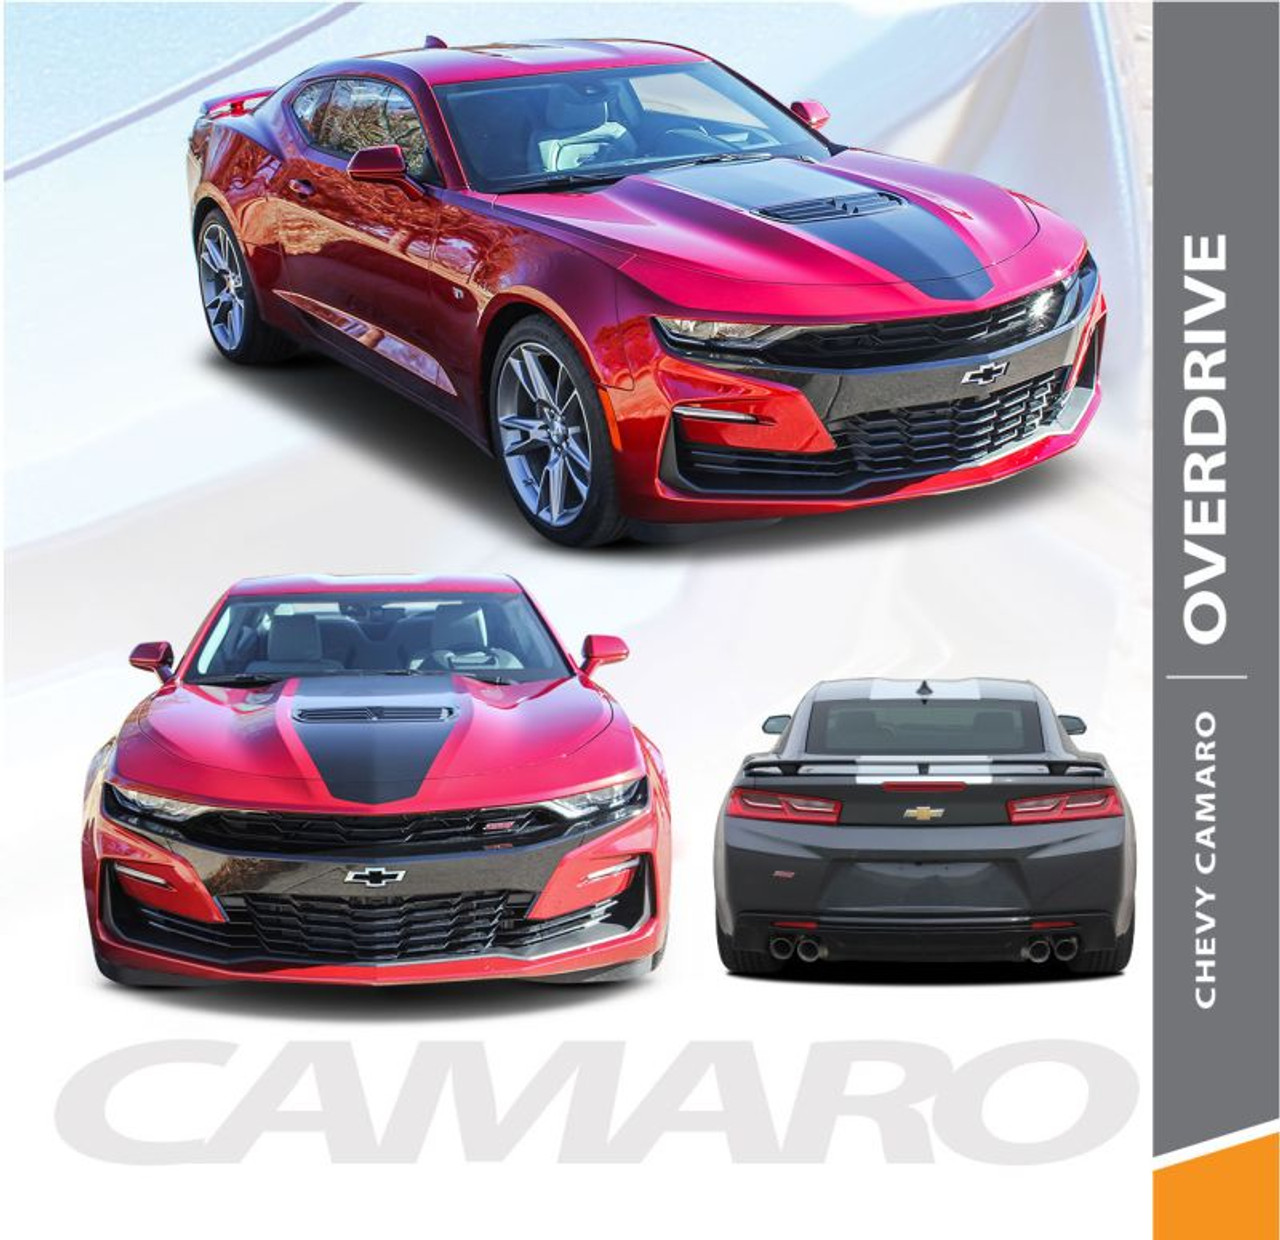 Overdrive 2019 Camaro Stripes Camaro Decals Camaro Vinyl Graphics